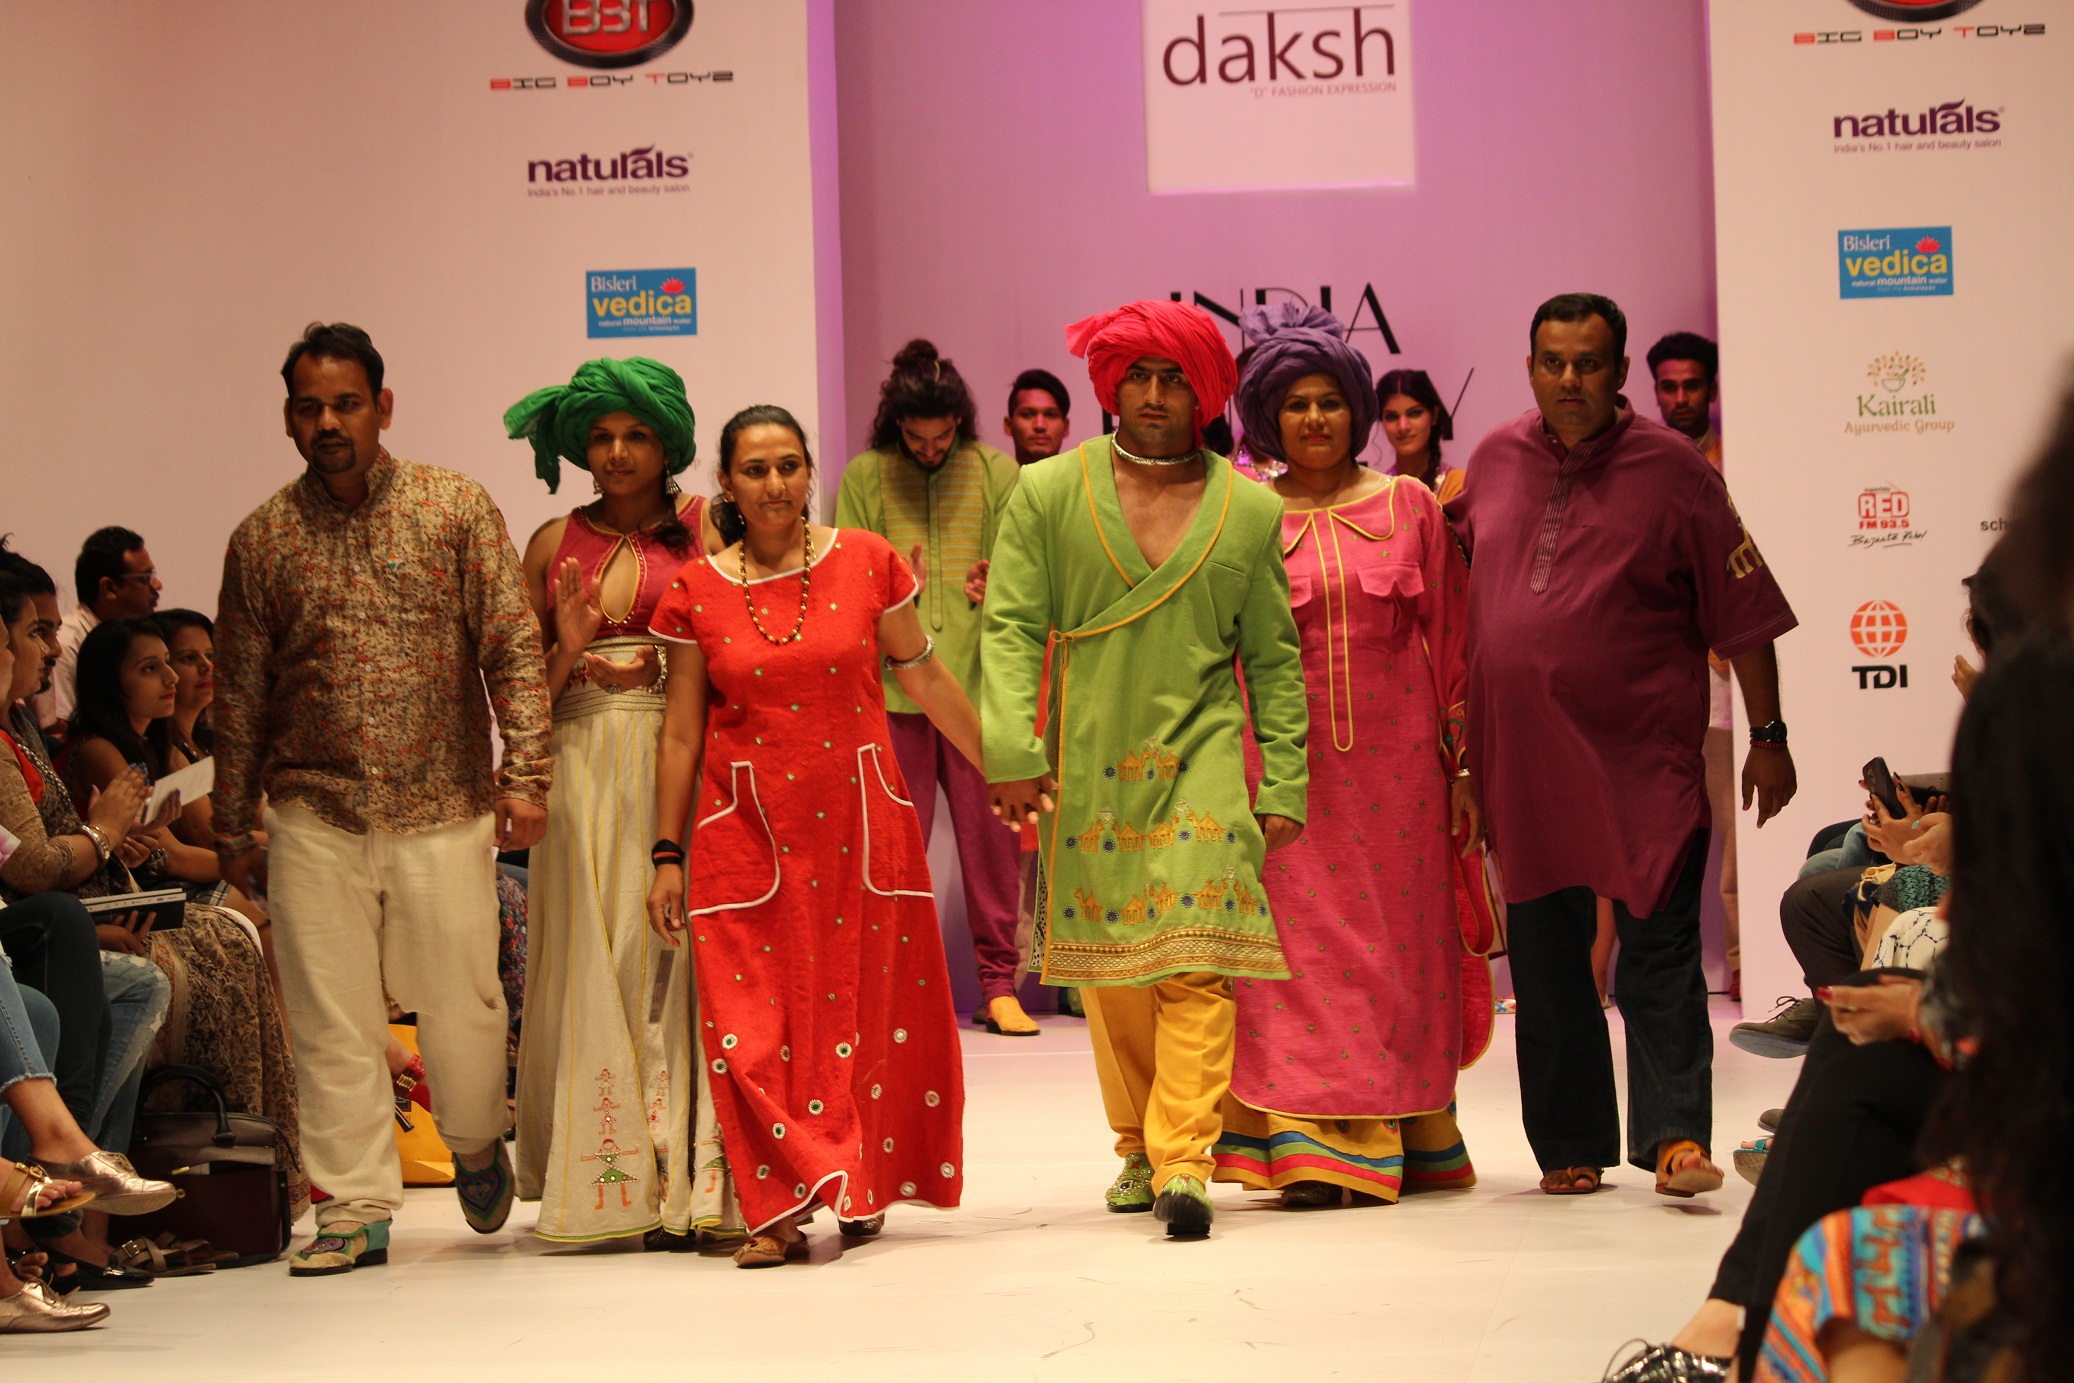 Suman Kundu, Sandeep Narwal, Sunil dabas has walked the ramp for DAKSH label|India Runway Week| cherryontopblog.com